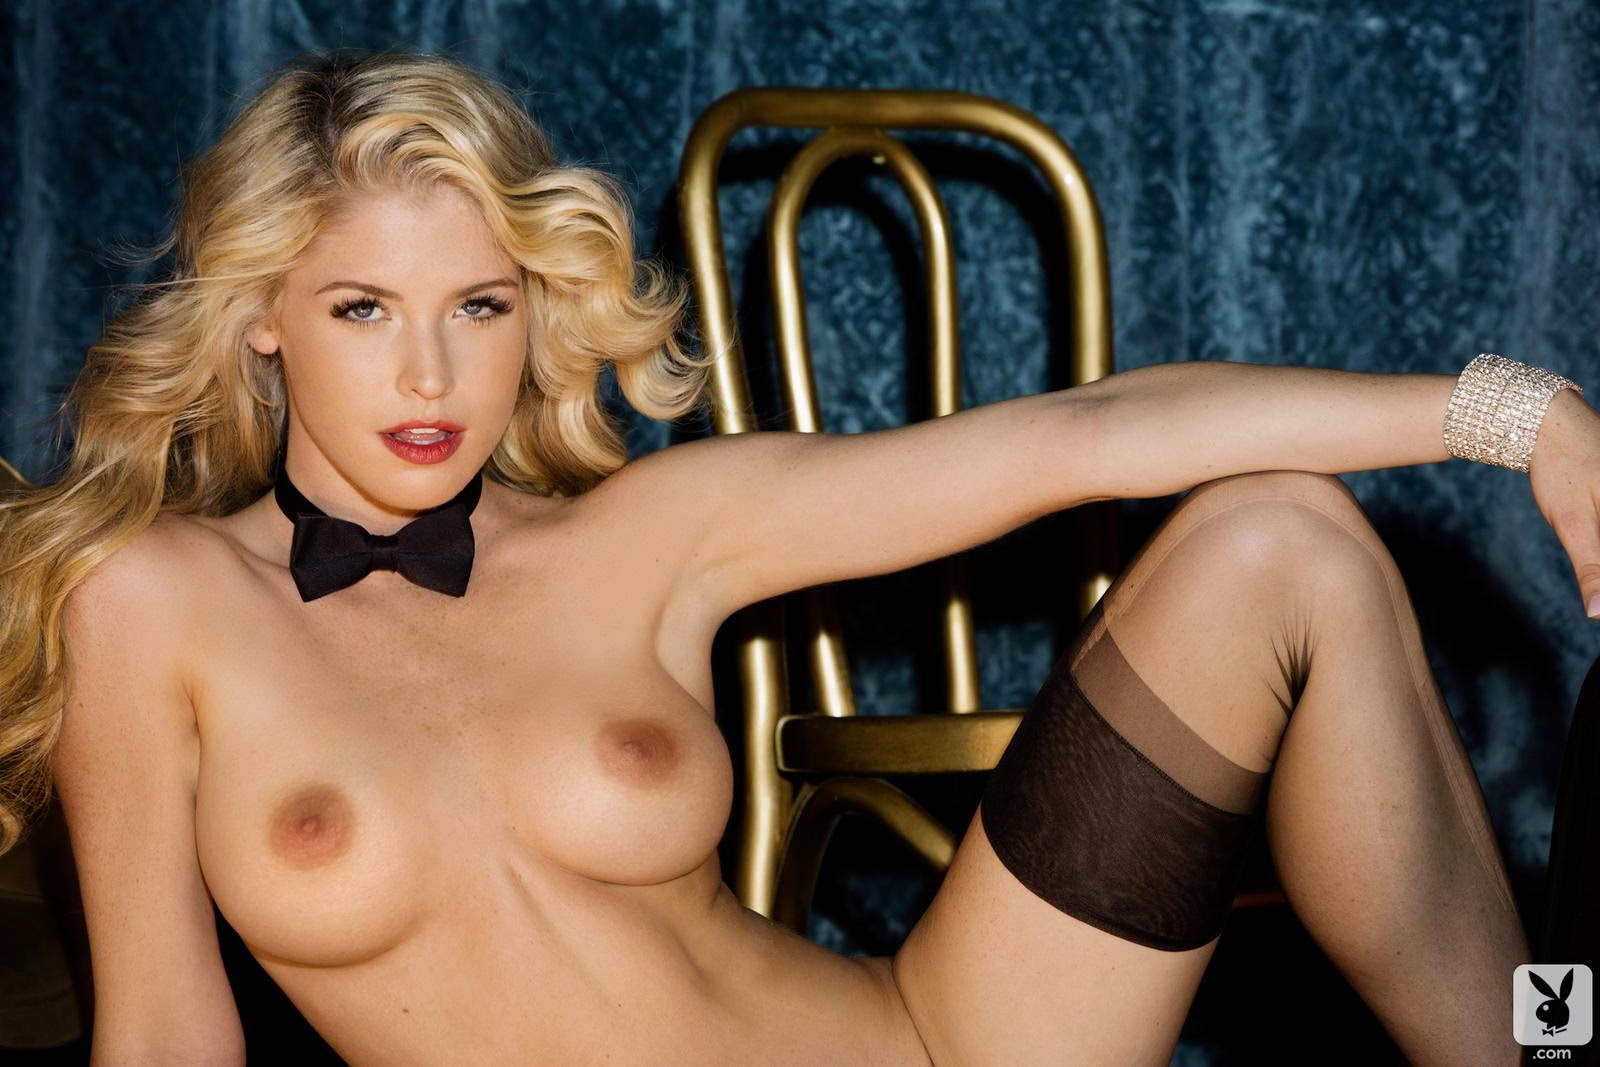 carly lauren nude Playboy playmate